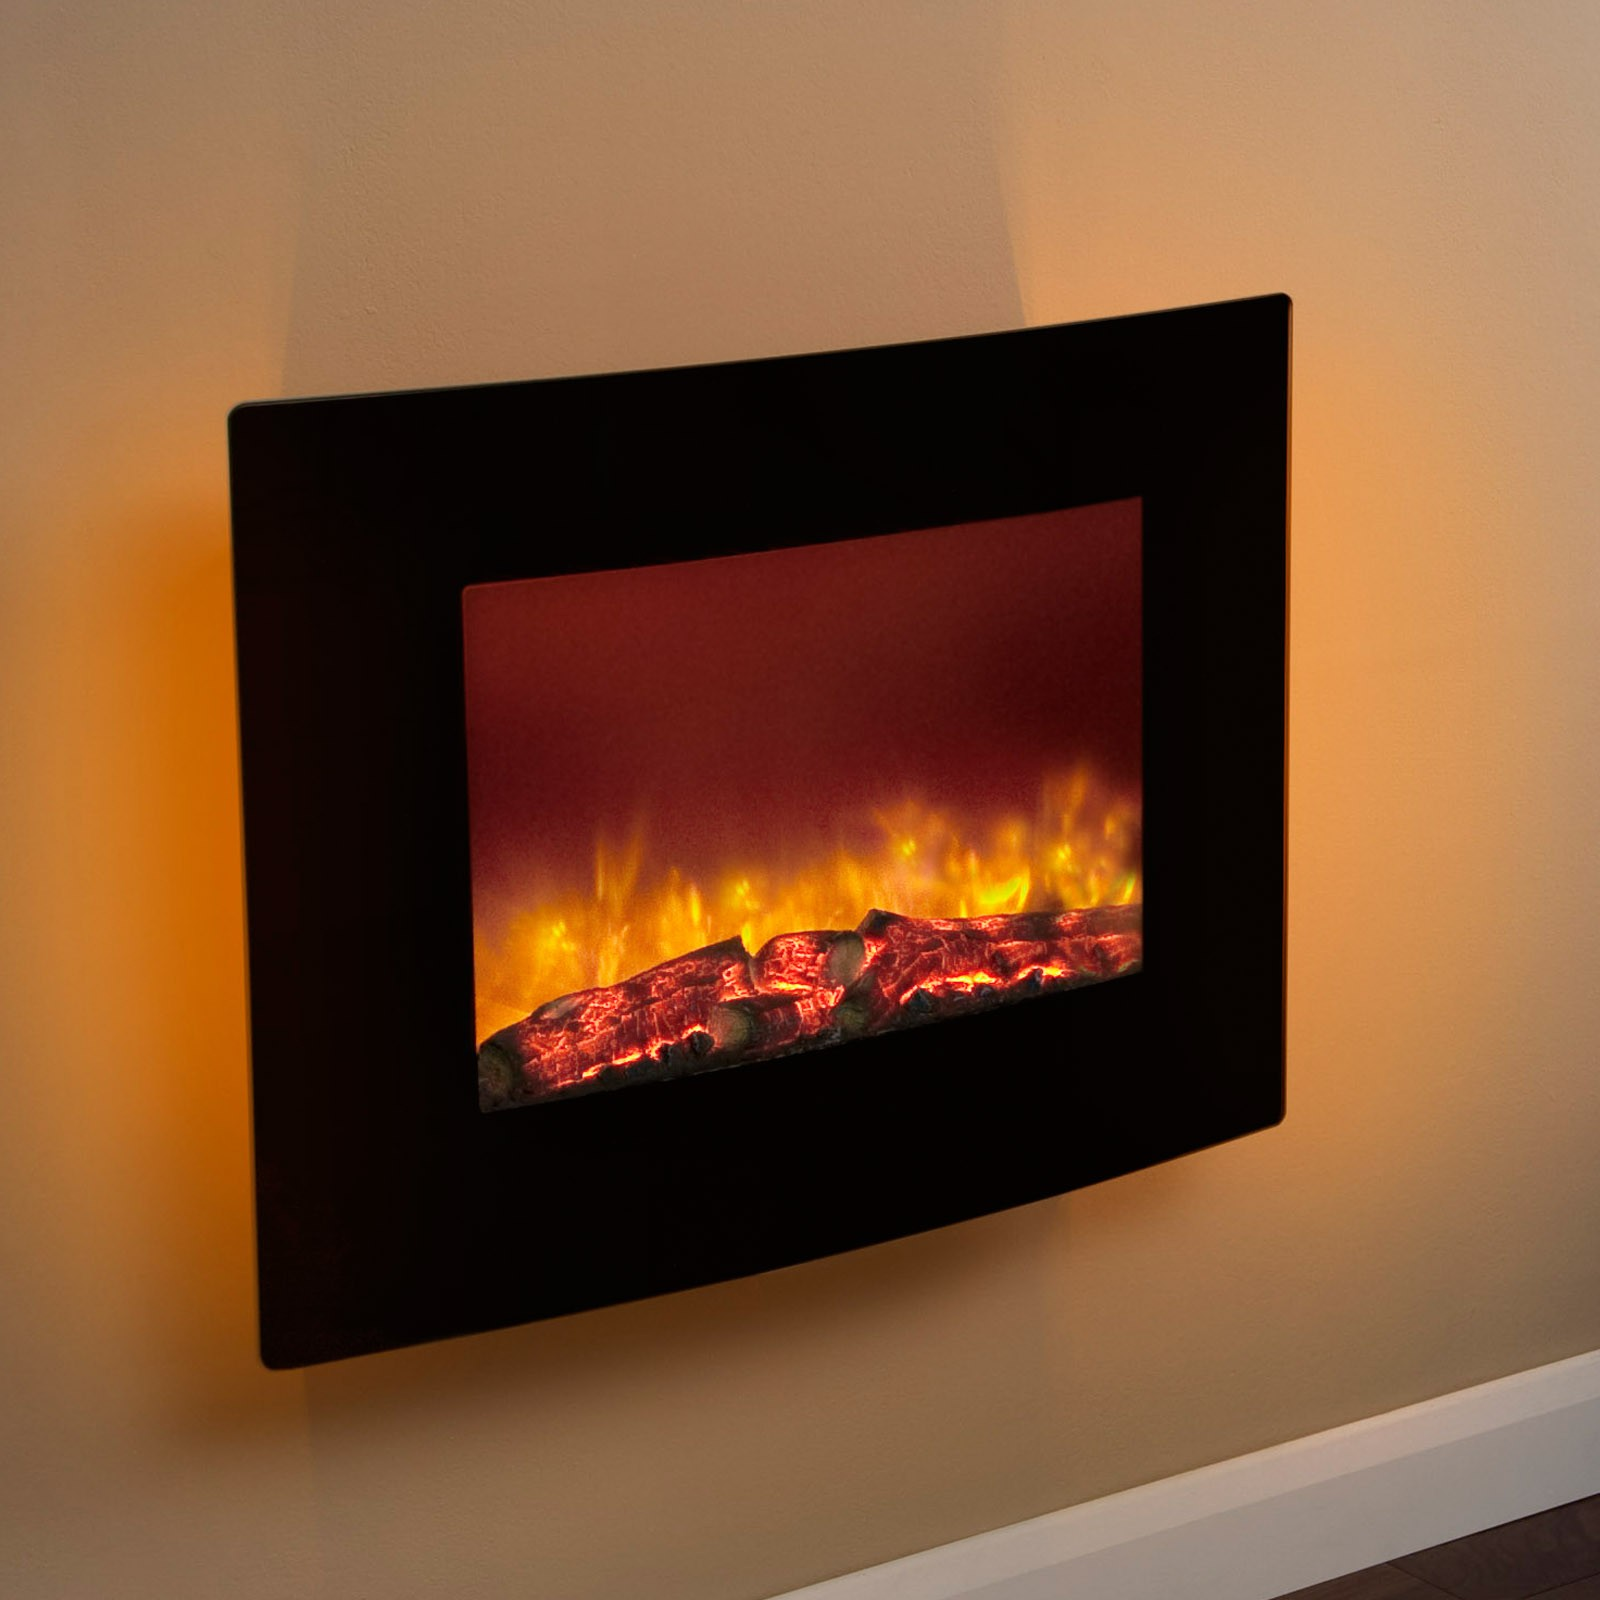 Wall Mounted Electric Lights : Compact Design Be Modern Quattro Wall Mounted Black Electric Fire Affordable